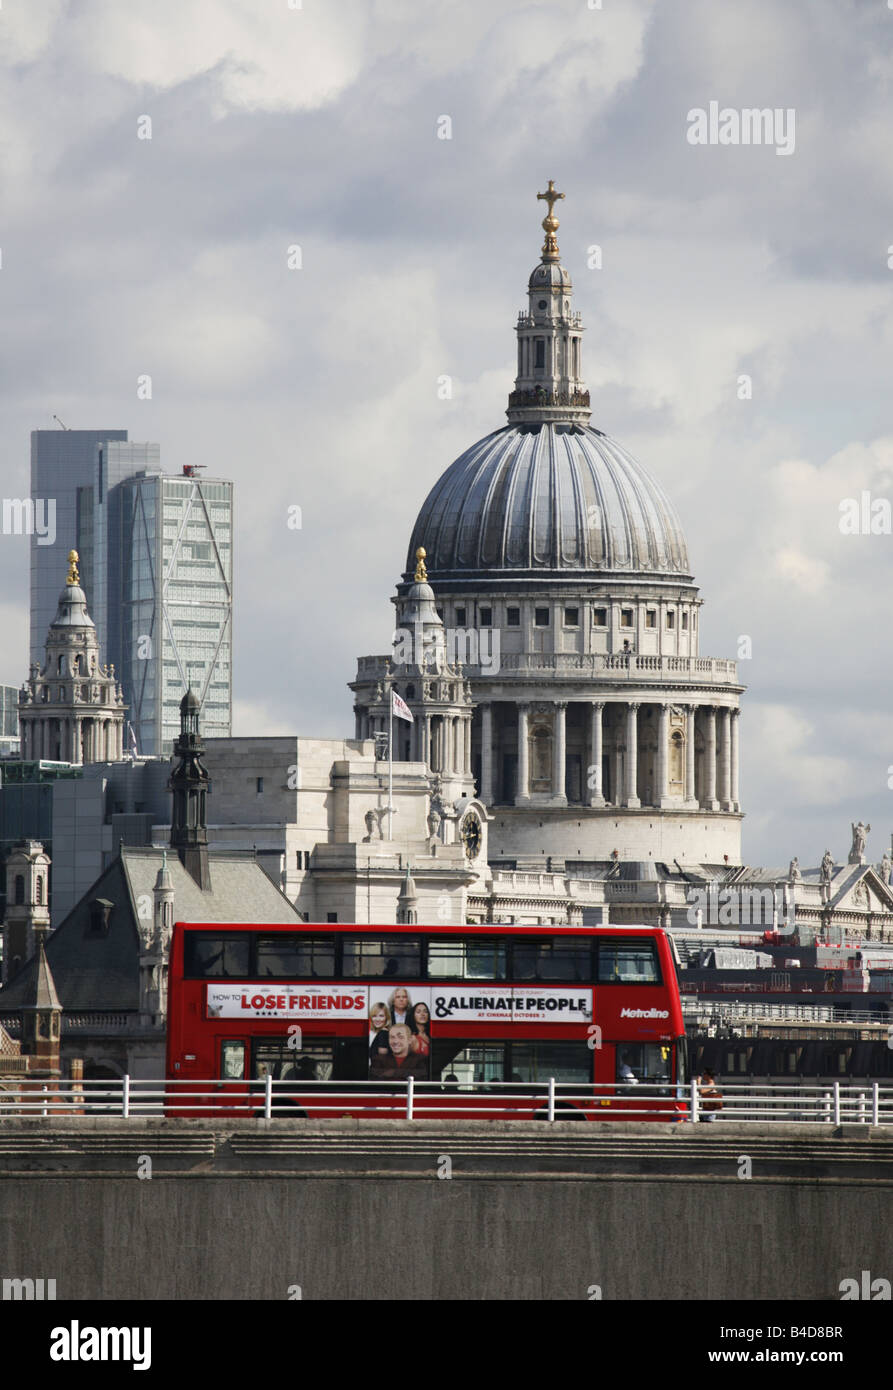 Saint Pauls Cathedral London Double Decker Red Bus on Waterloo Bridge Iconic Images of London Stock Photo